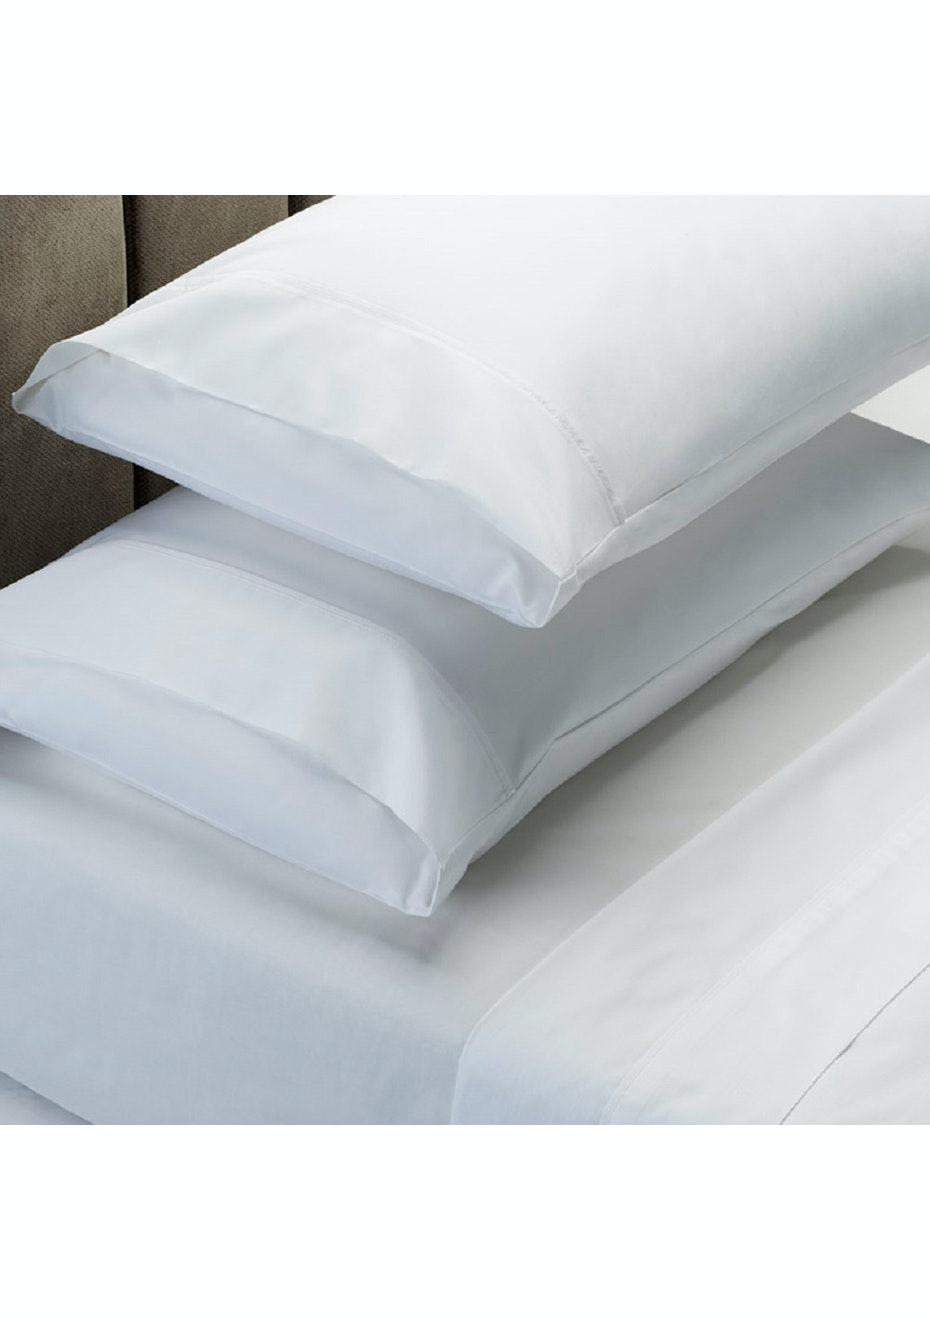 Park Avenue 1000 Thread count 100% Egyptian Cotton Sheet sets King - White